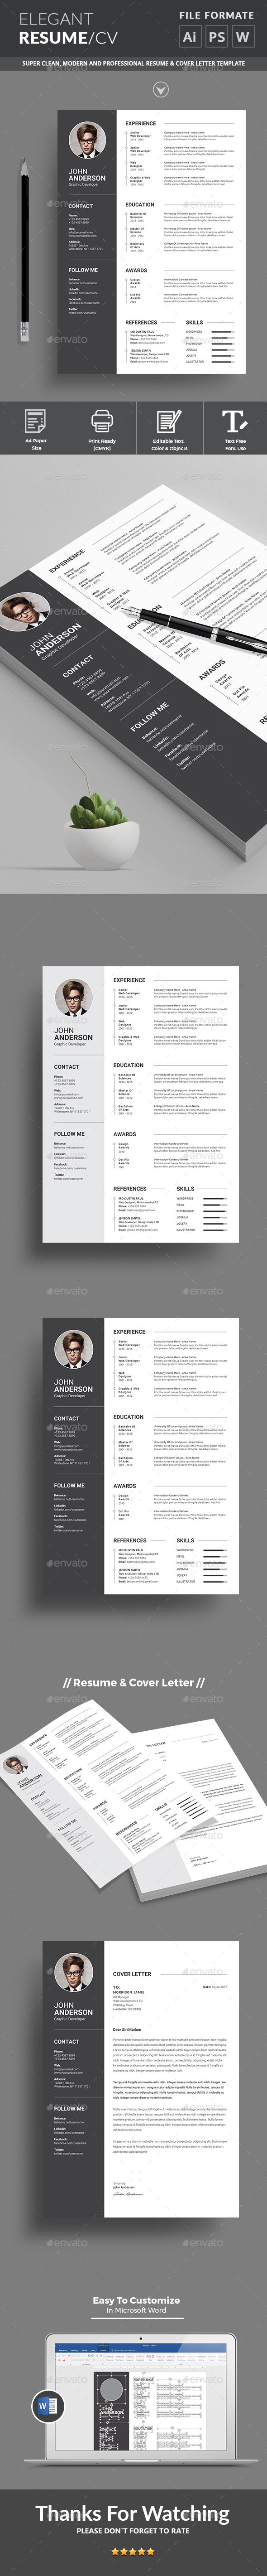 Resume | Template, Print templates and Cv template